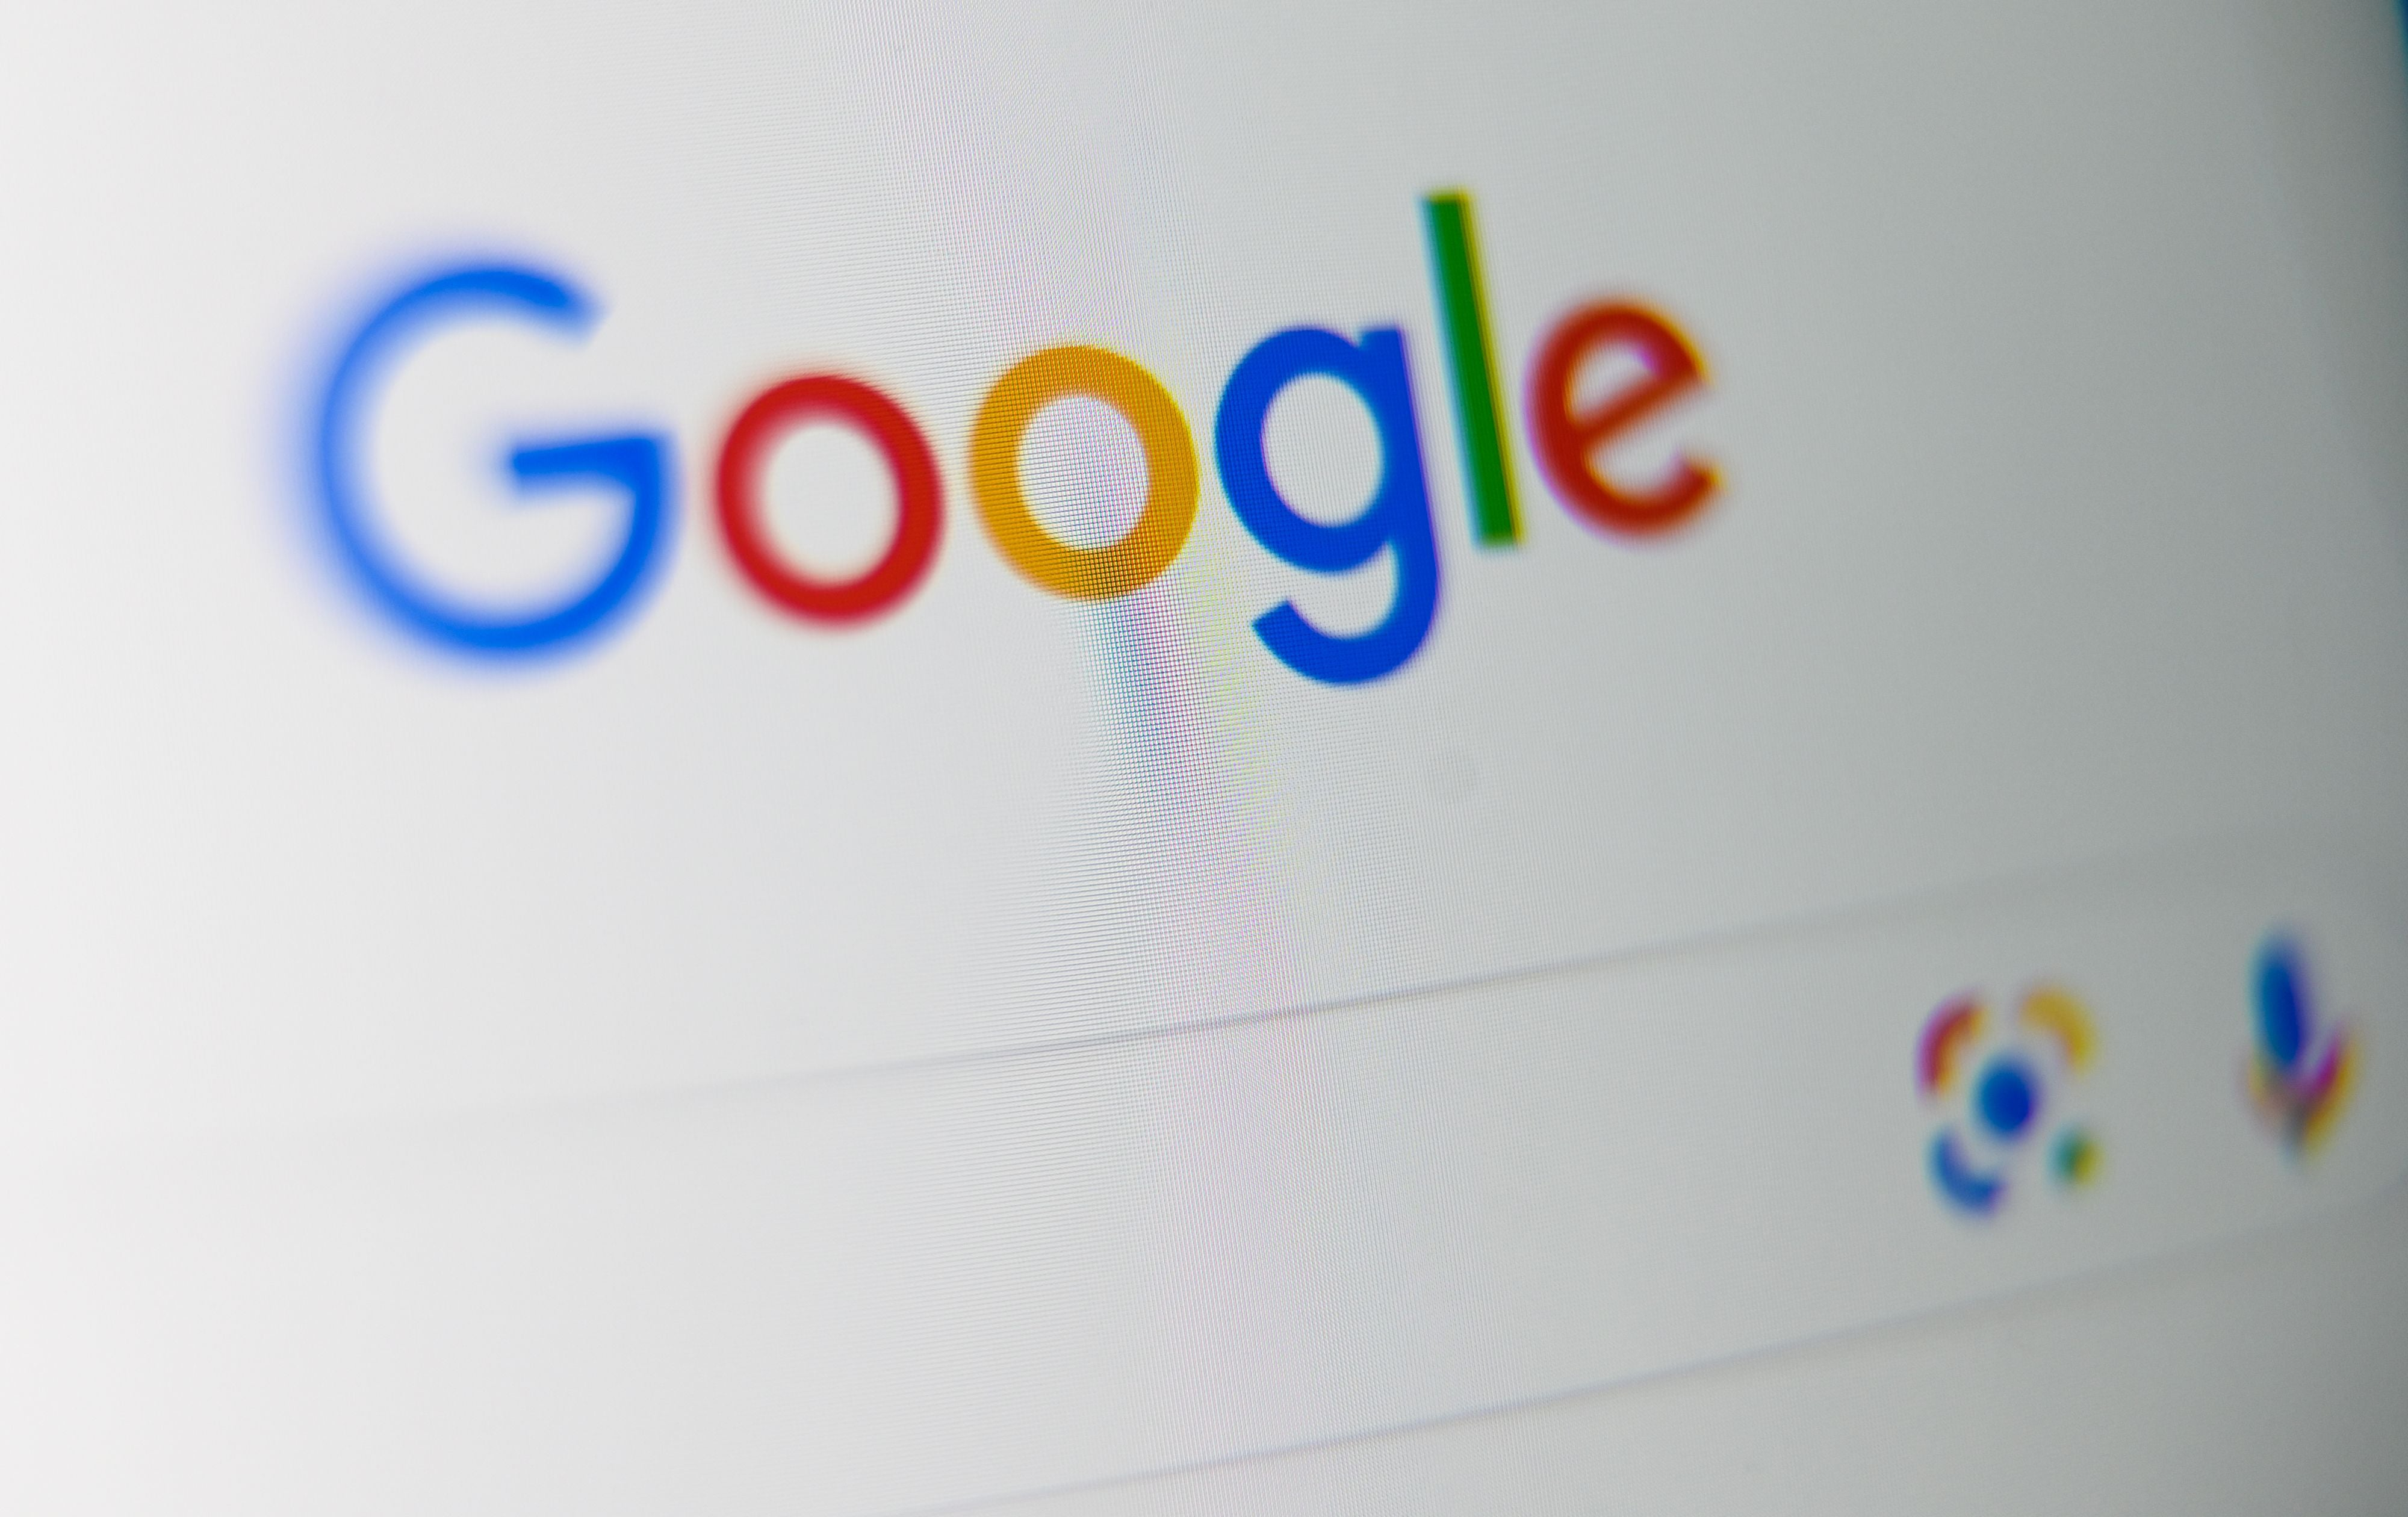 North Korea-backed hackers posed as computer security bloggers to steal information, Google says - independent